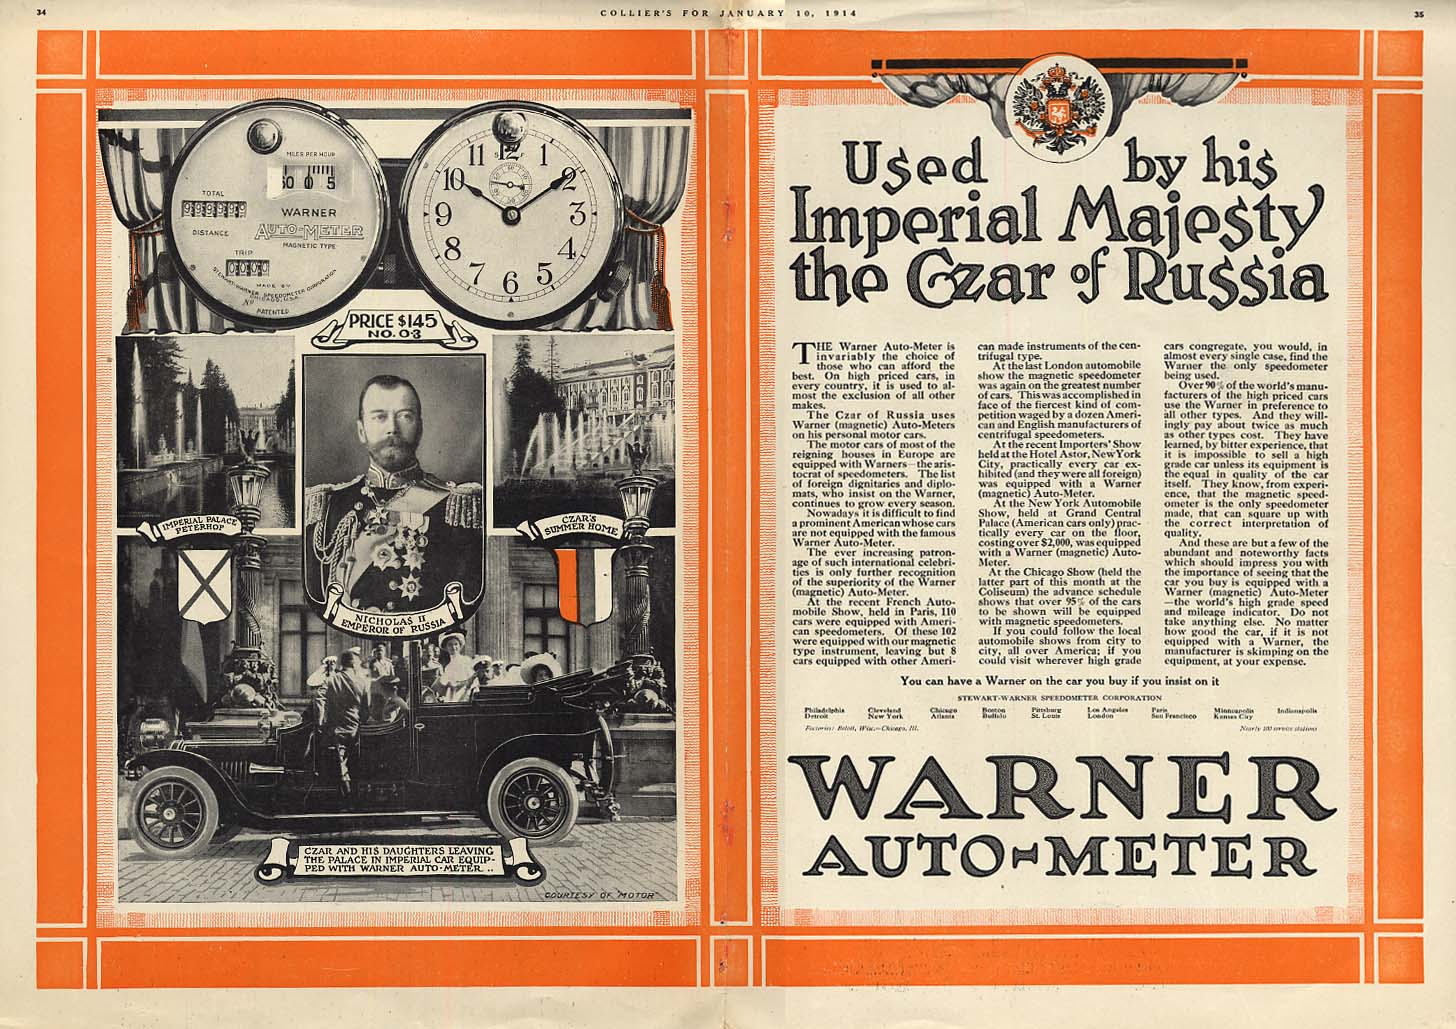 Image for Used by His Imperial Majesty the Czar of Russia - Warner Auto-Meter ad 1914 Col